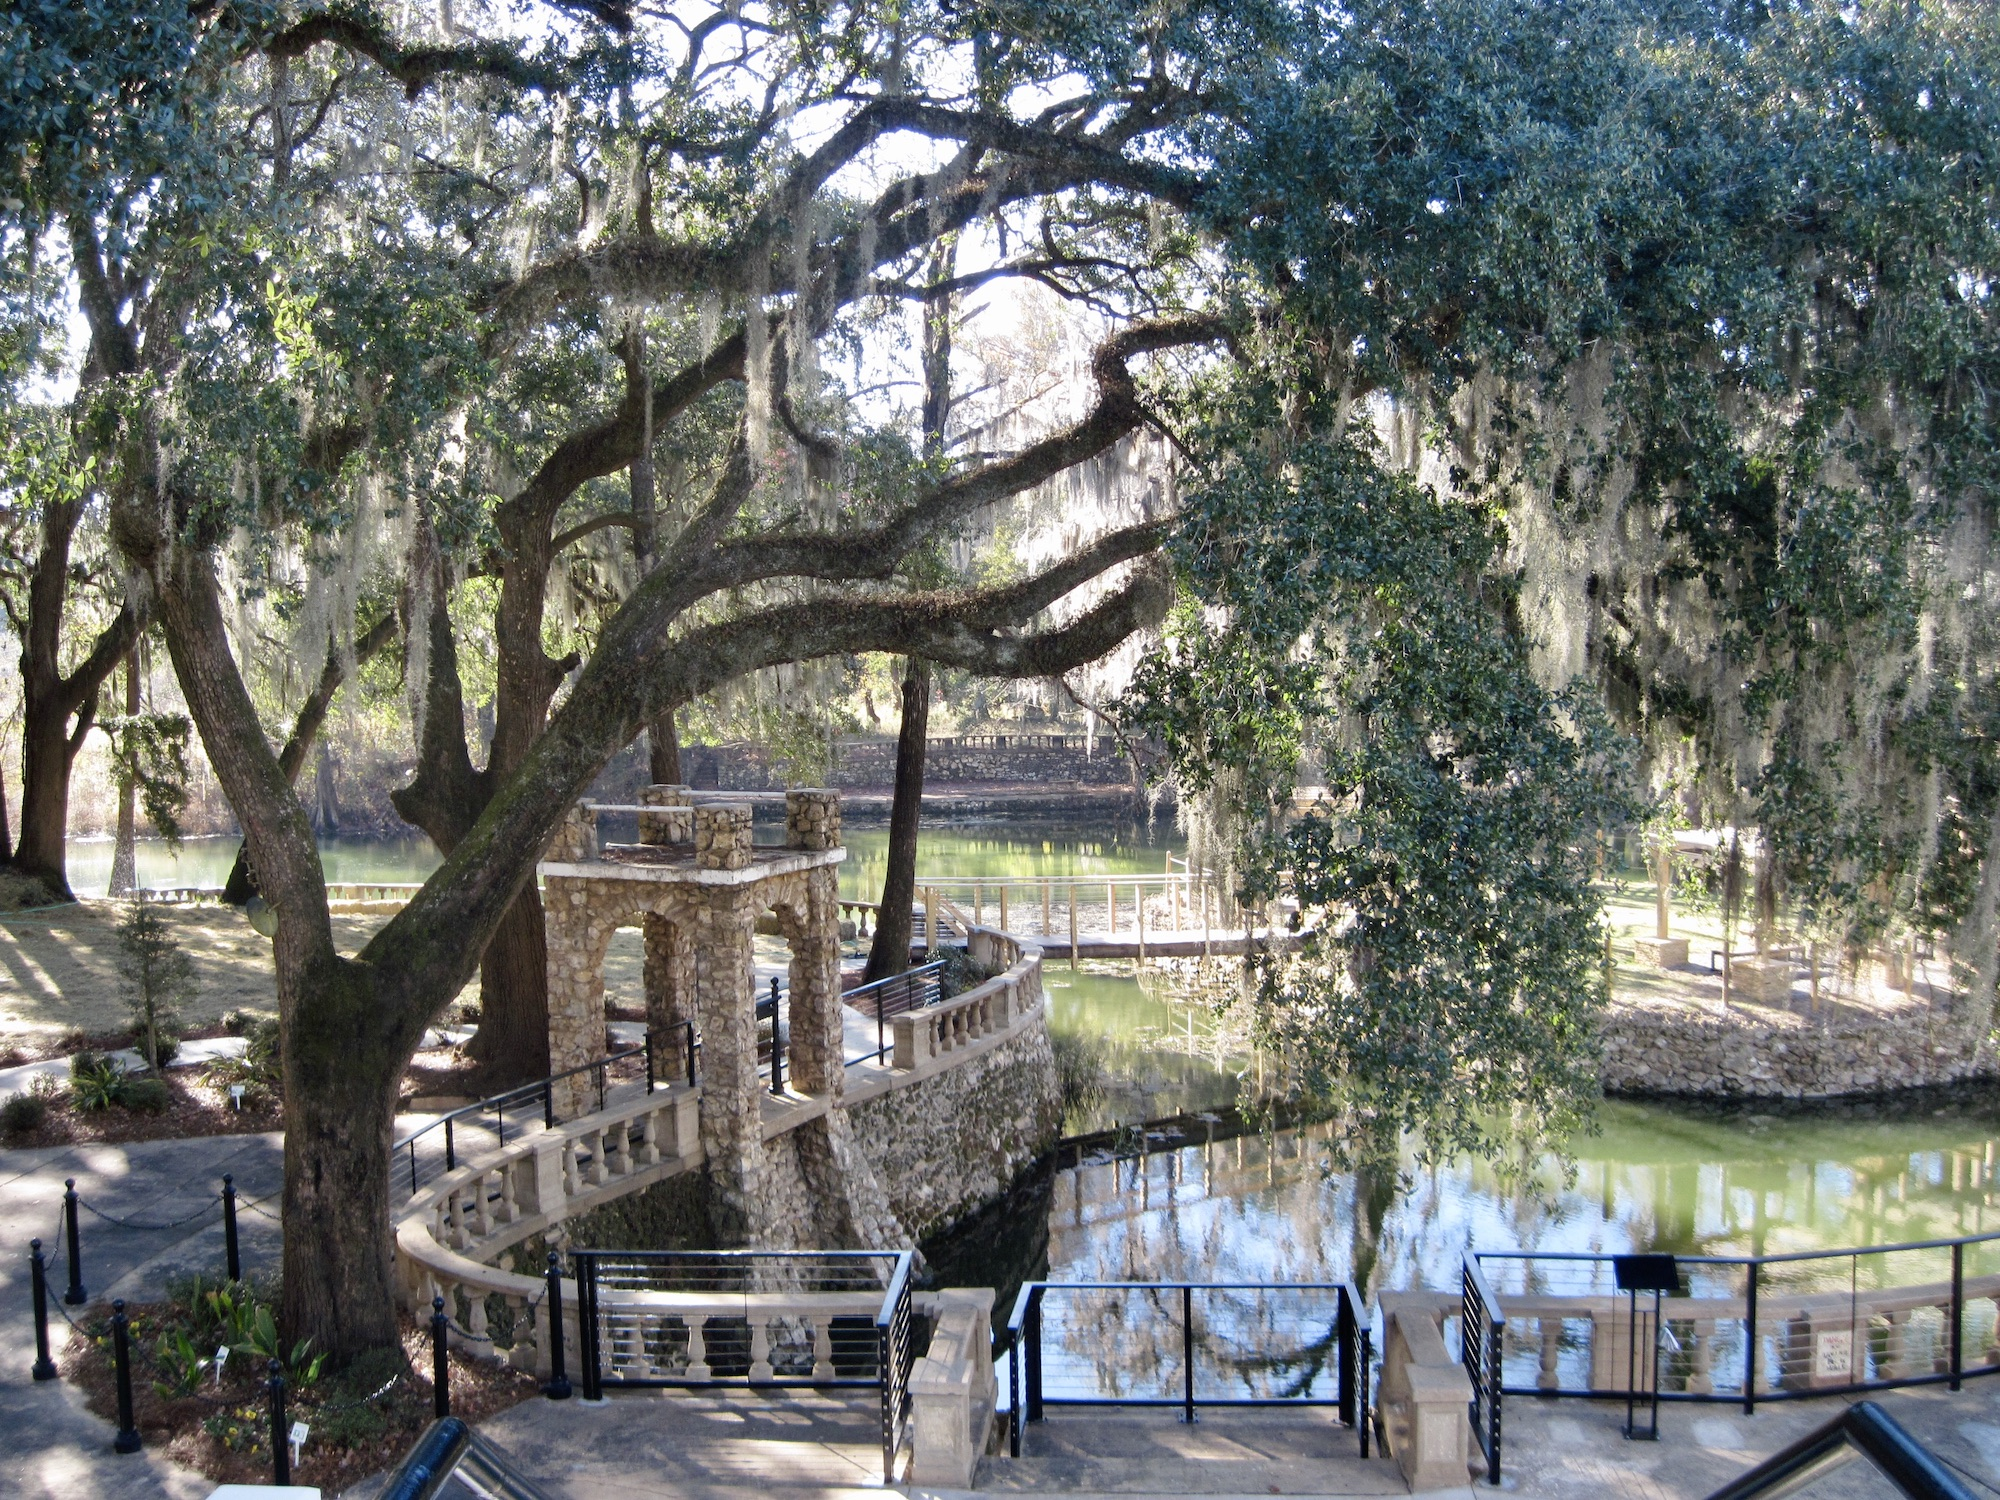 Free things to do in Albany GA includes gardens and gentle paths near cooling deep waters.